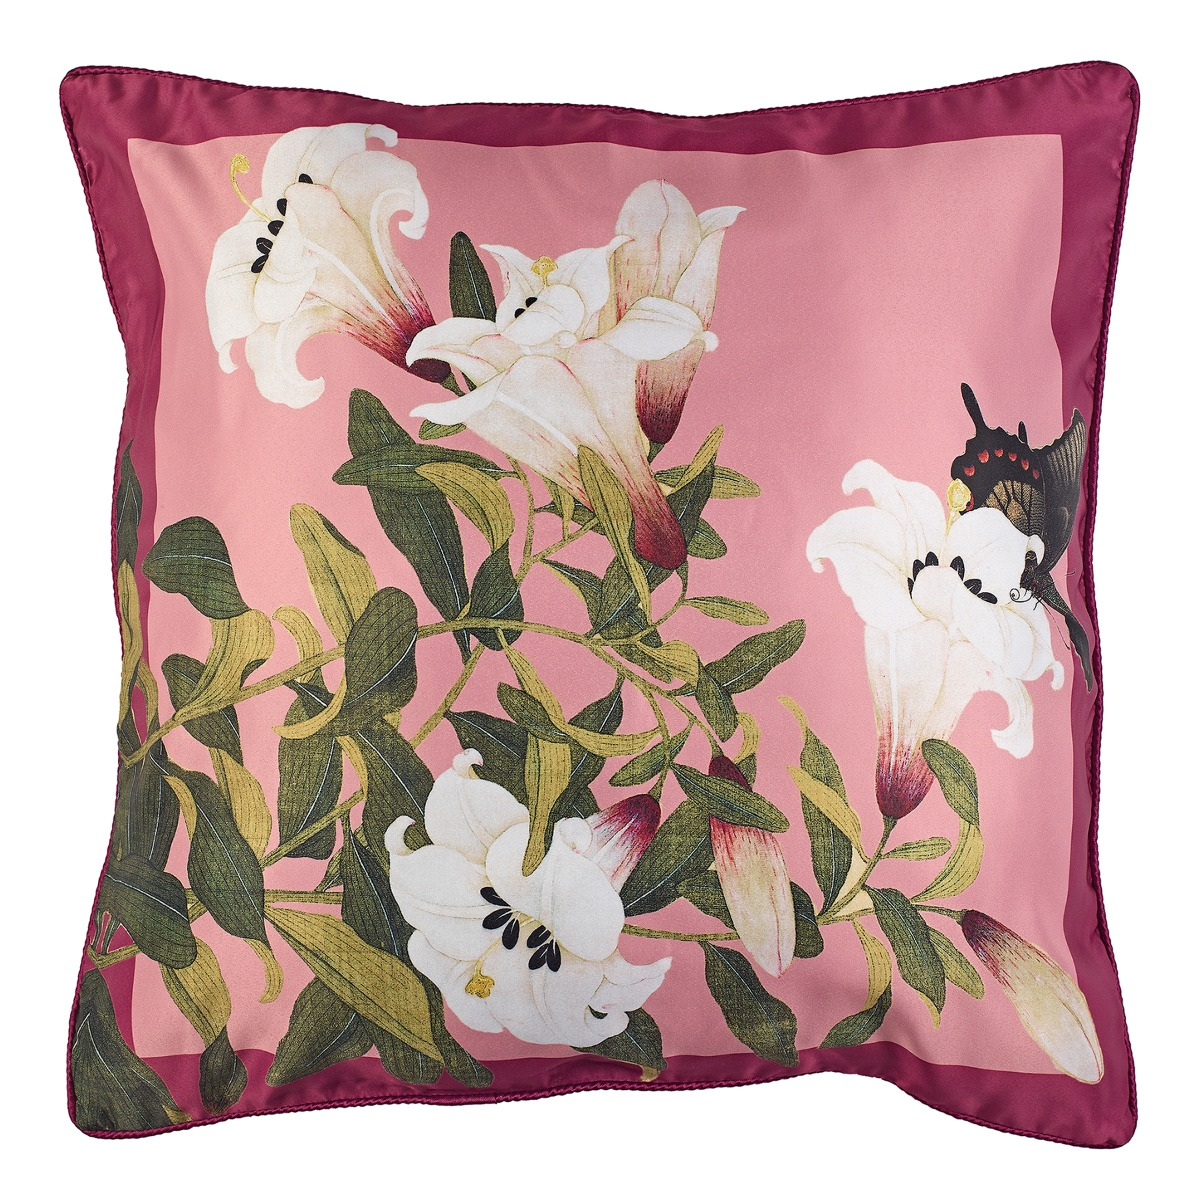 Lily butterfly cushion cover